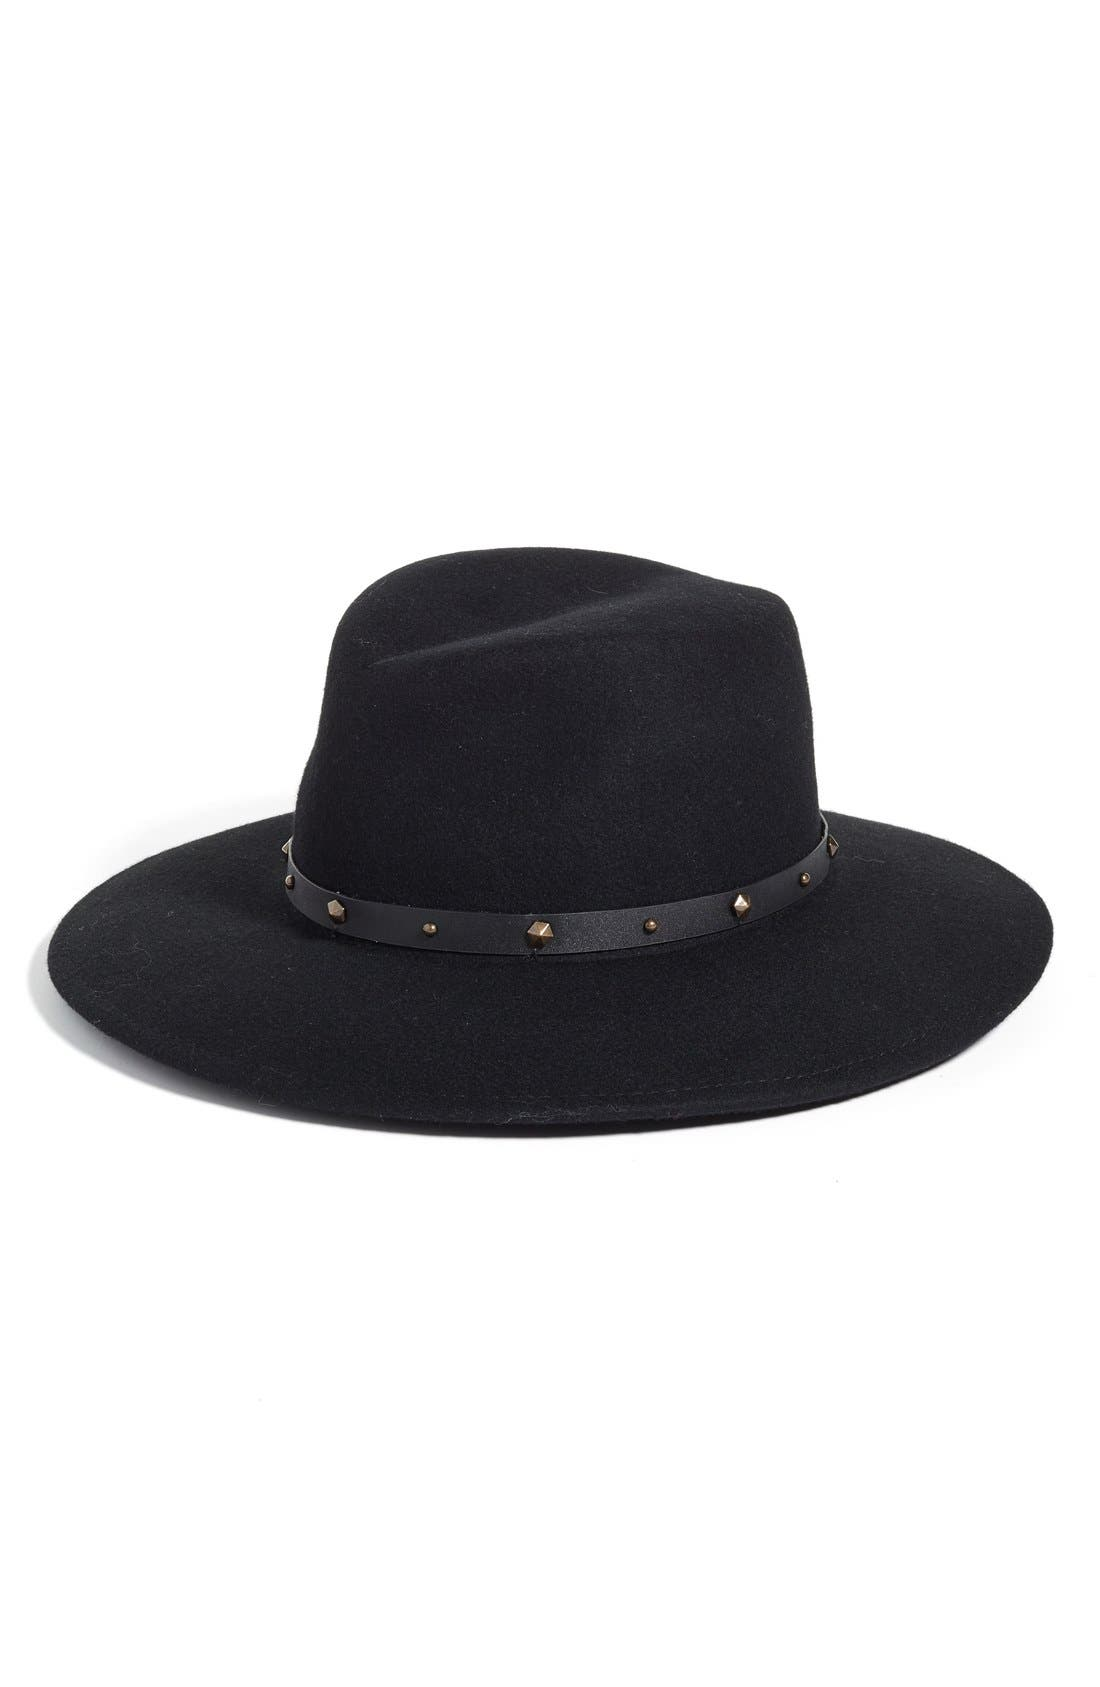 Alternate Image 1 Selected - Eric Javits Karli Wool Felt Wide Brim Hat